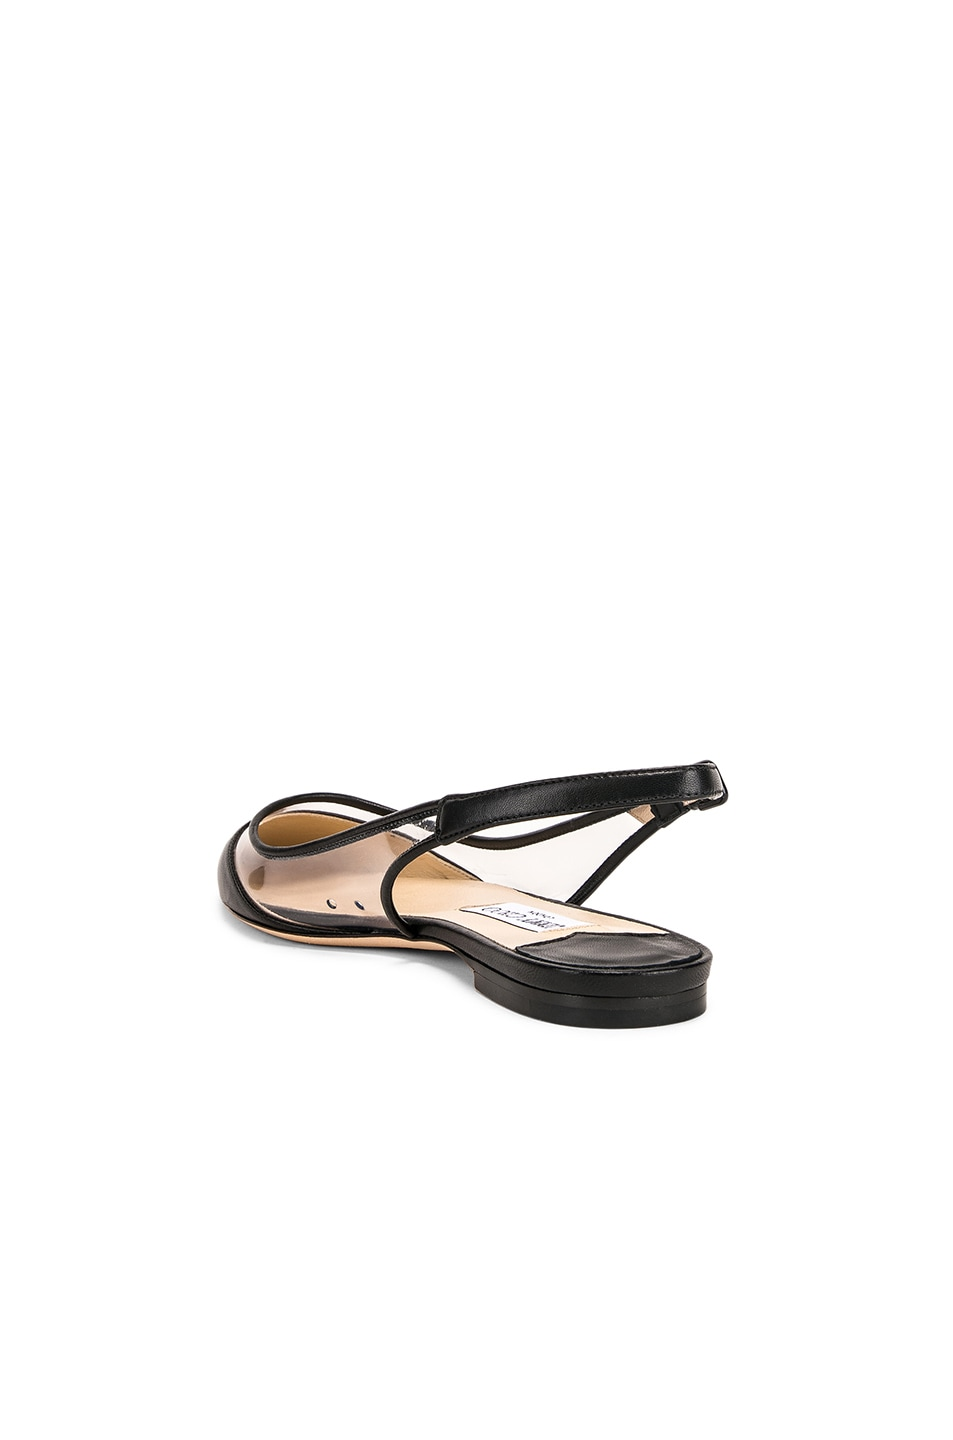 Image 3 of Jimmy Choo Erin Leather Plexi Flat in Black & PVC